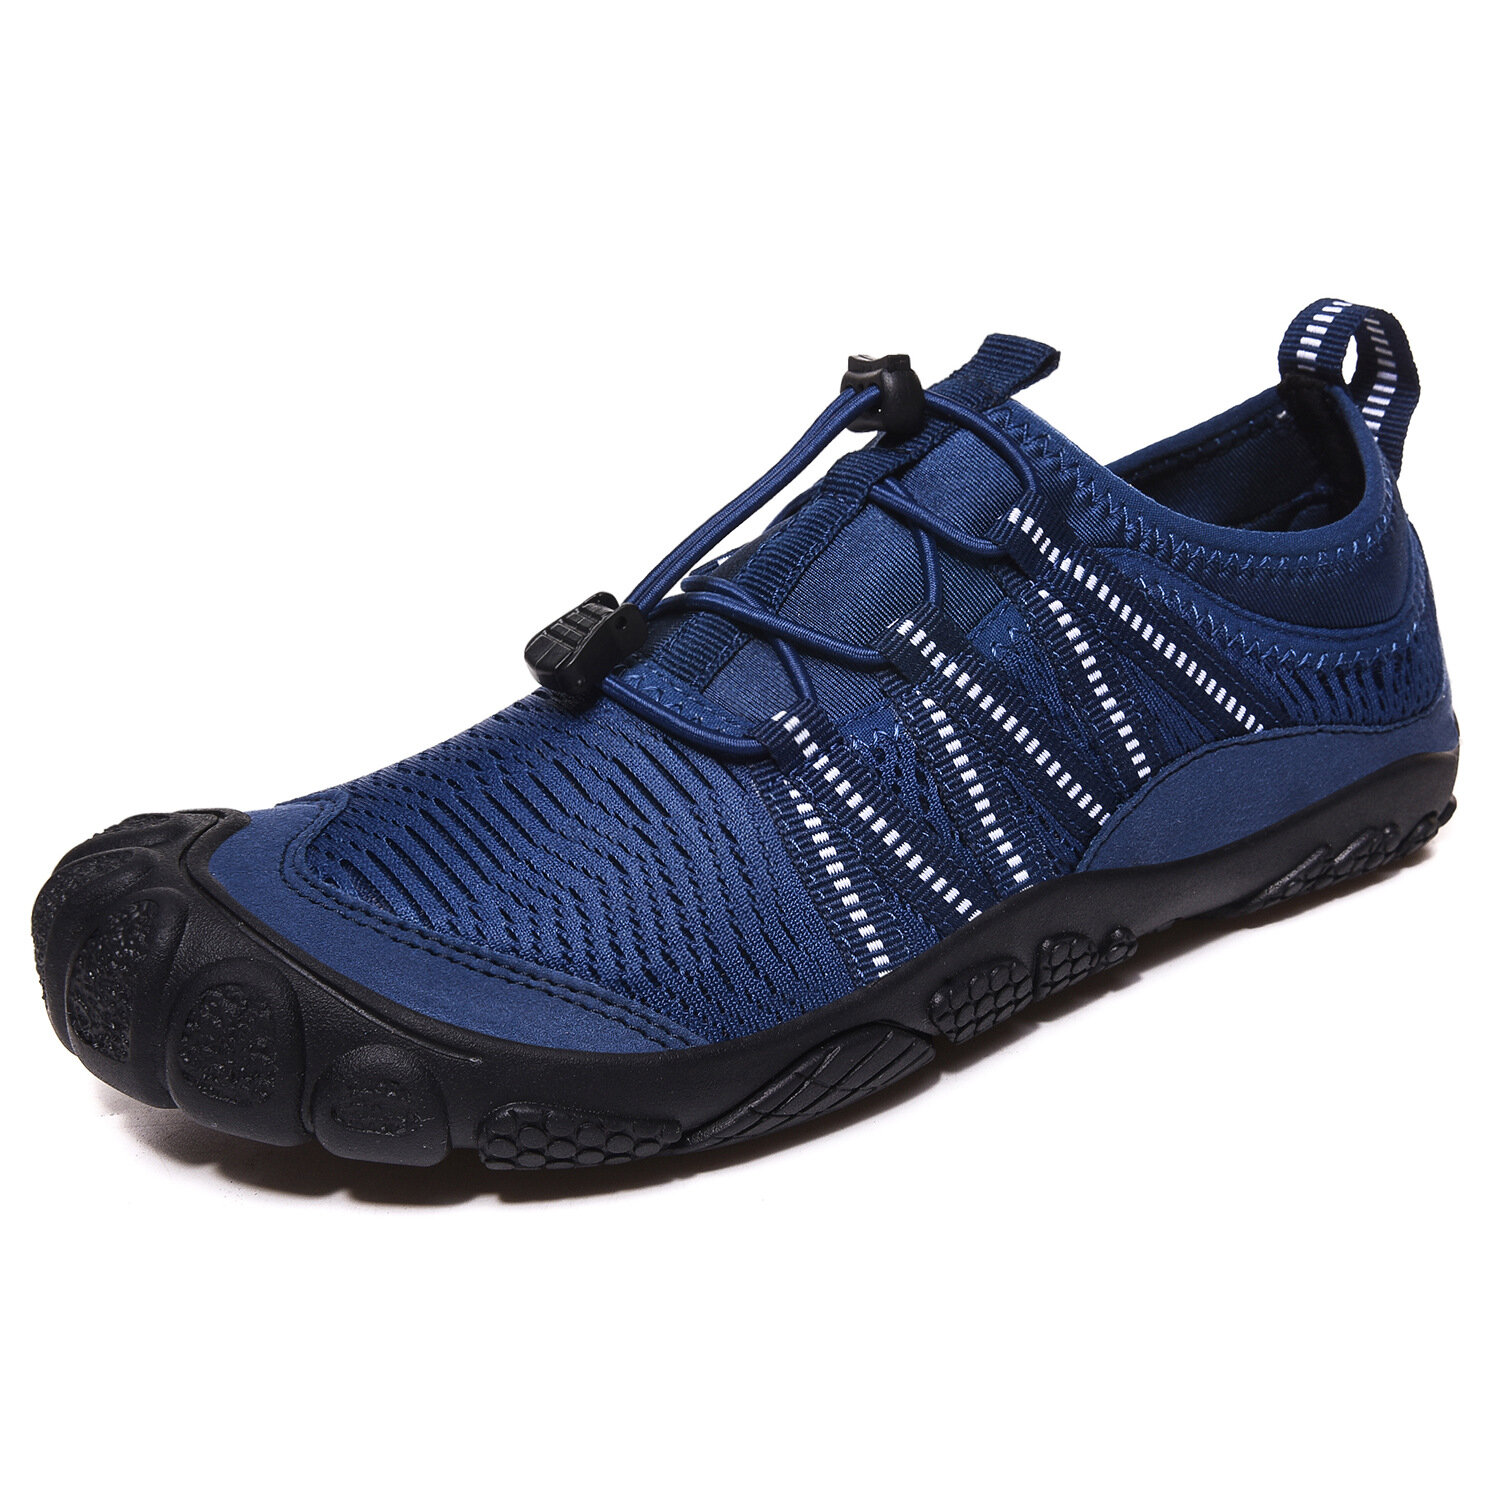 Men Fabric Non Slip Quick Drying Soft Sole Casual Water Shoes